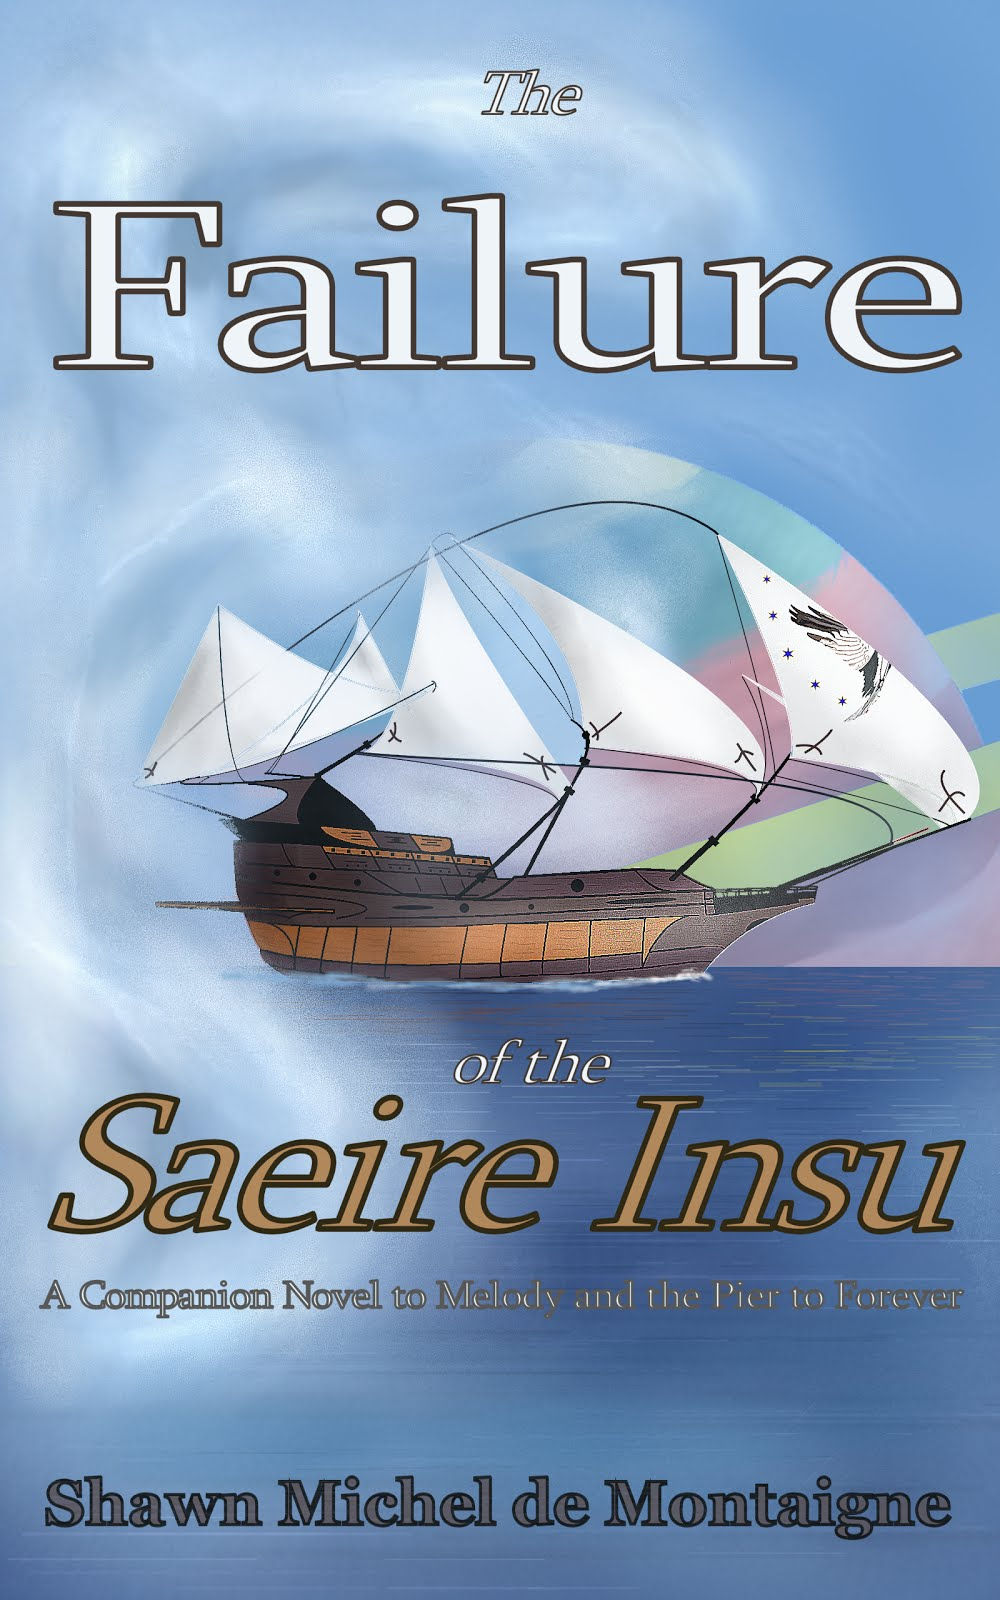 The Failure of the Saeire Insu